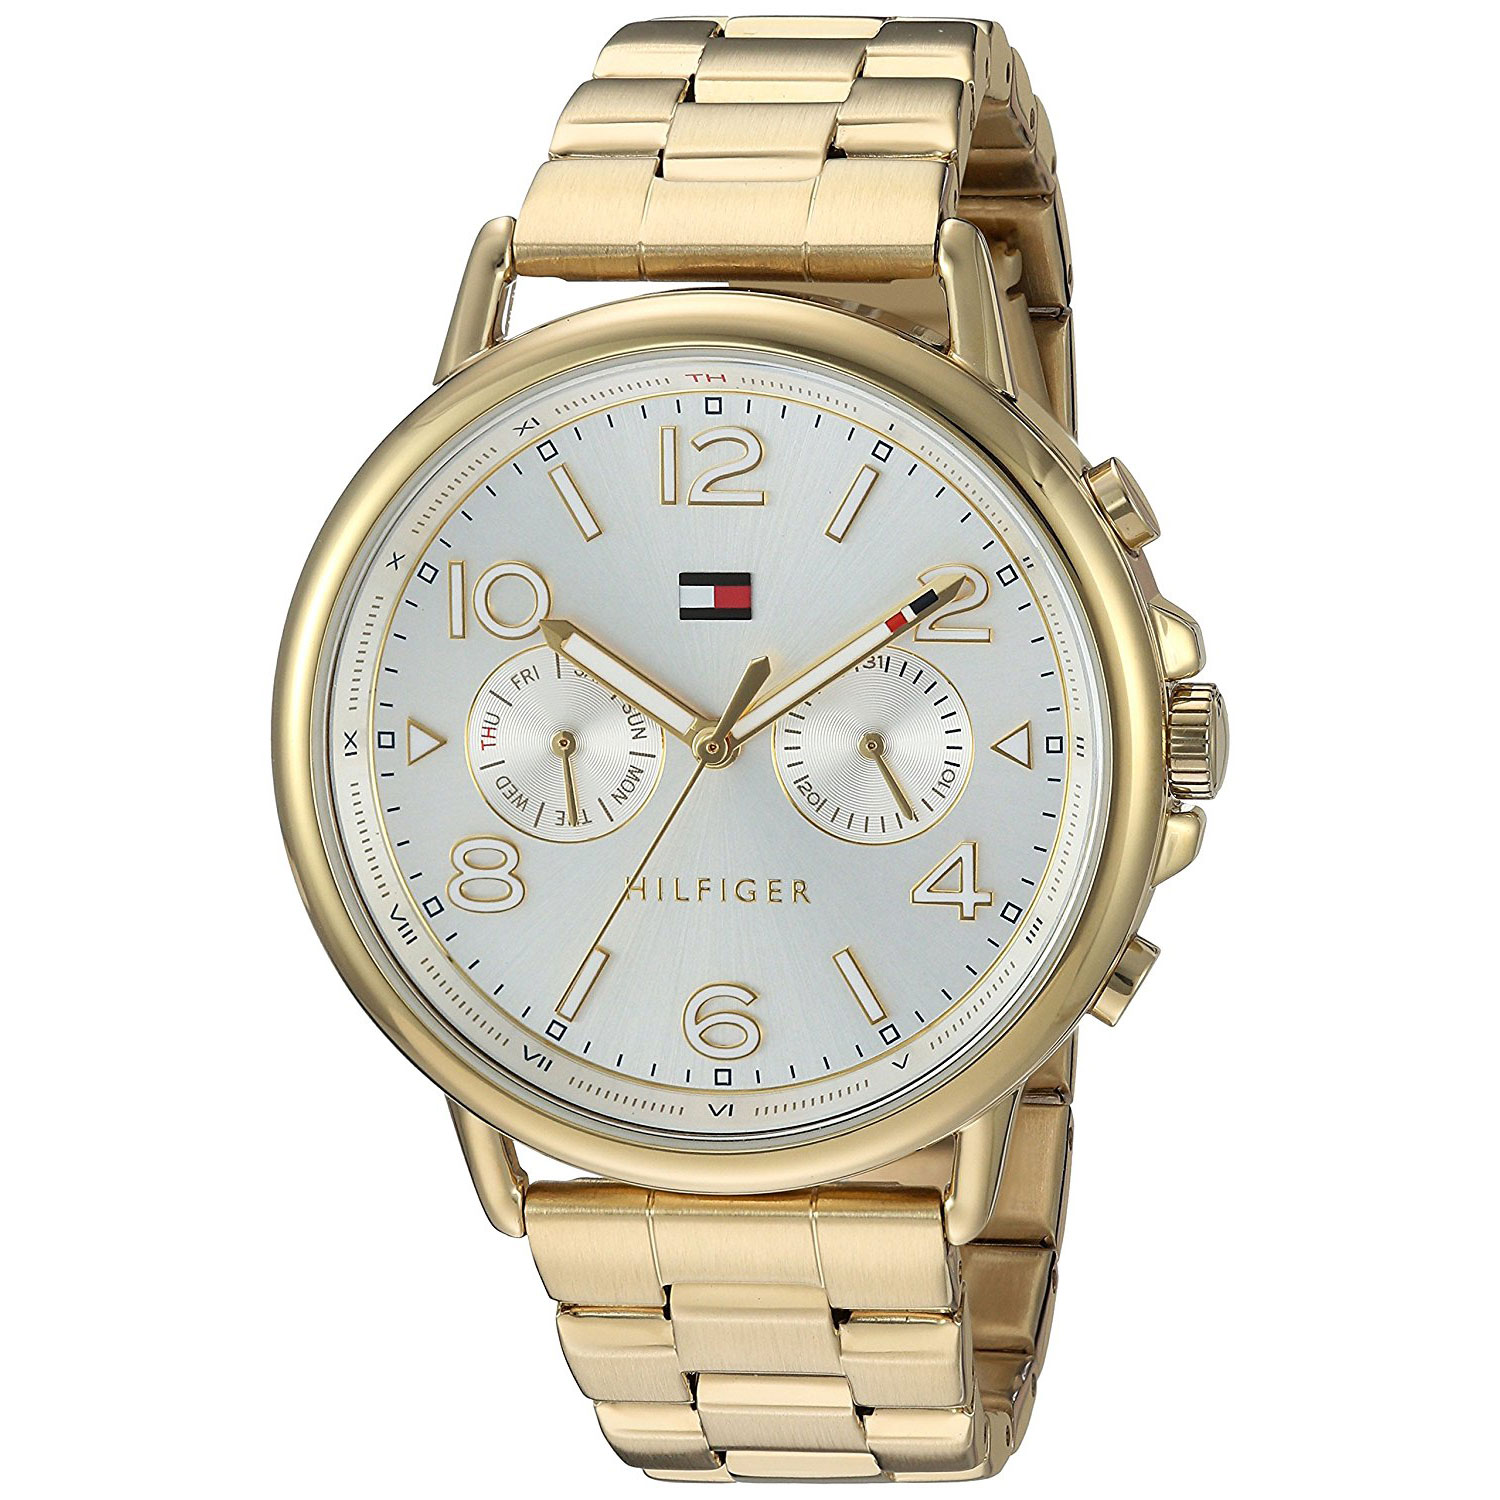 c43924b8 Tommy Hilfiger watch with gold stainless steel 1781732. Tap to expand